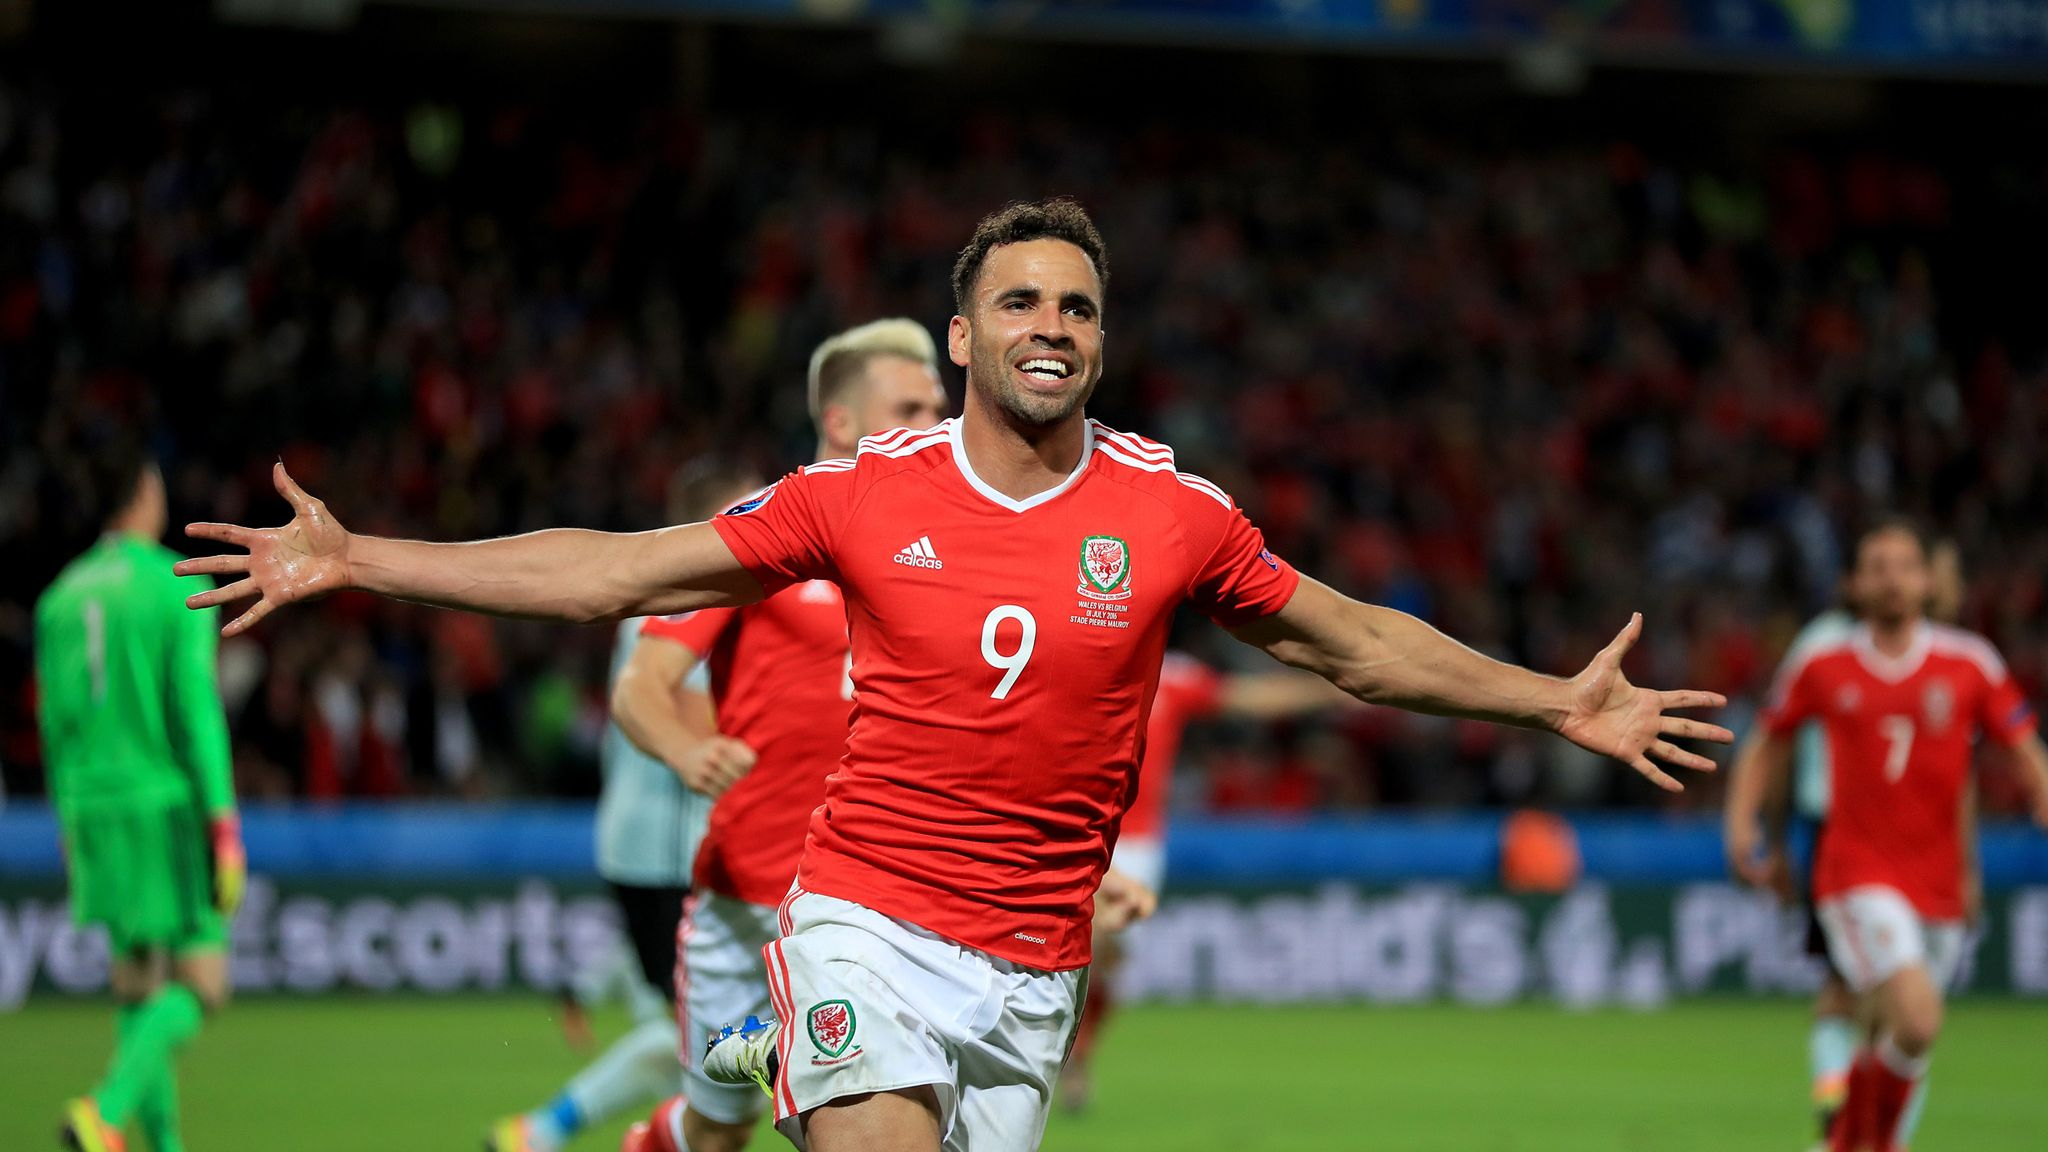 Wales striker Hal Robson-Kanu signs for West Brom   Football News   Sky  Sports